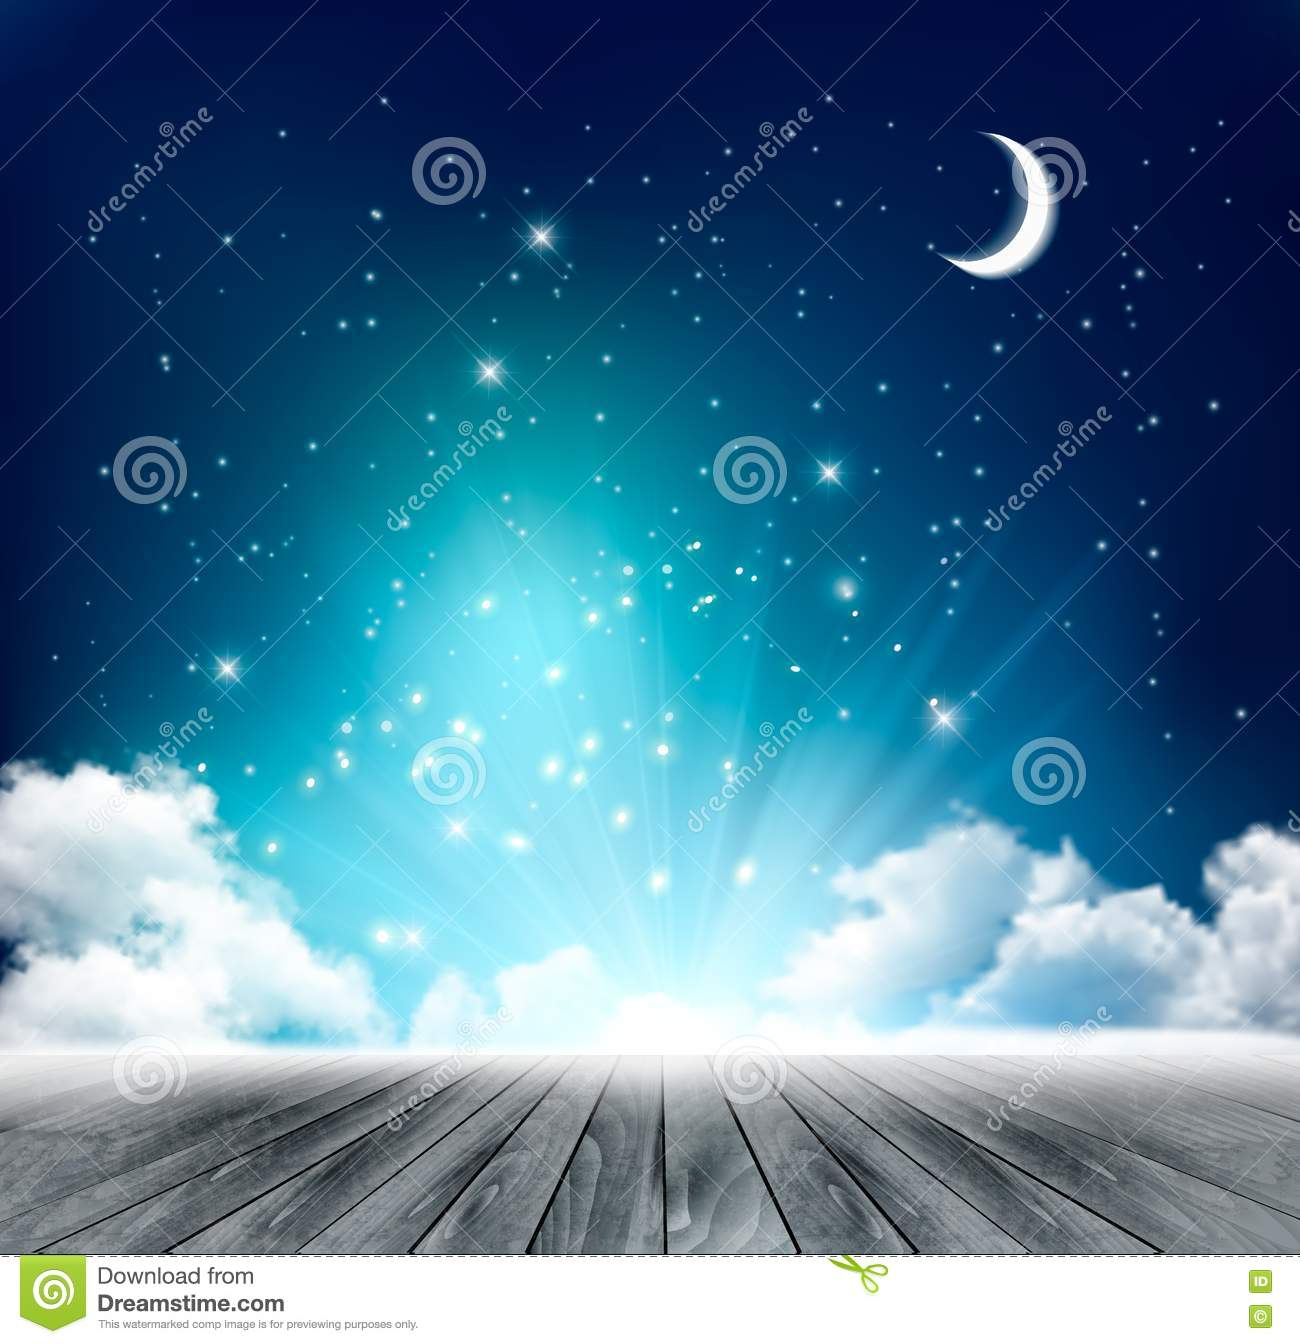 Beautiful Magical Night Background With Moon And Stars